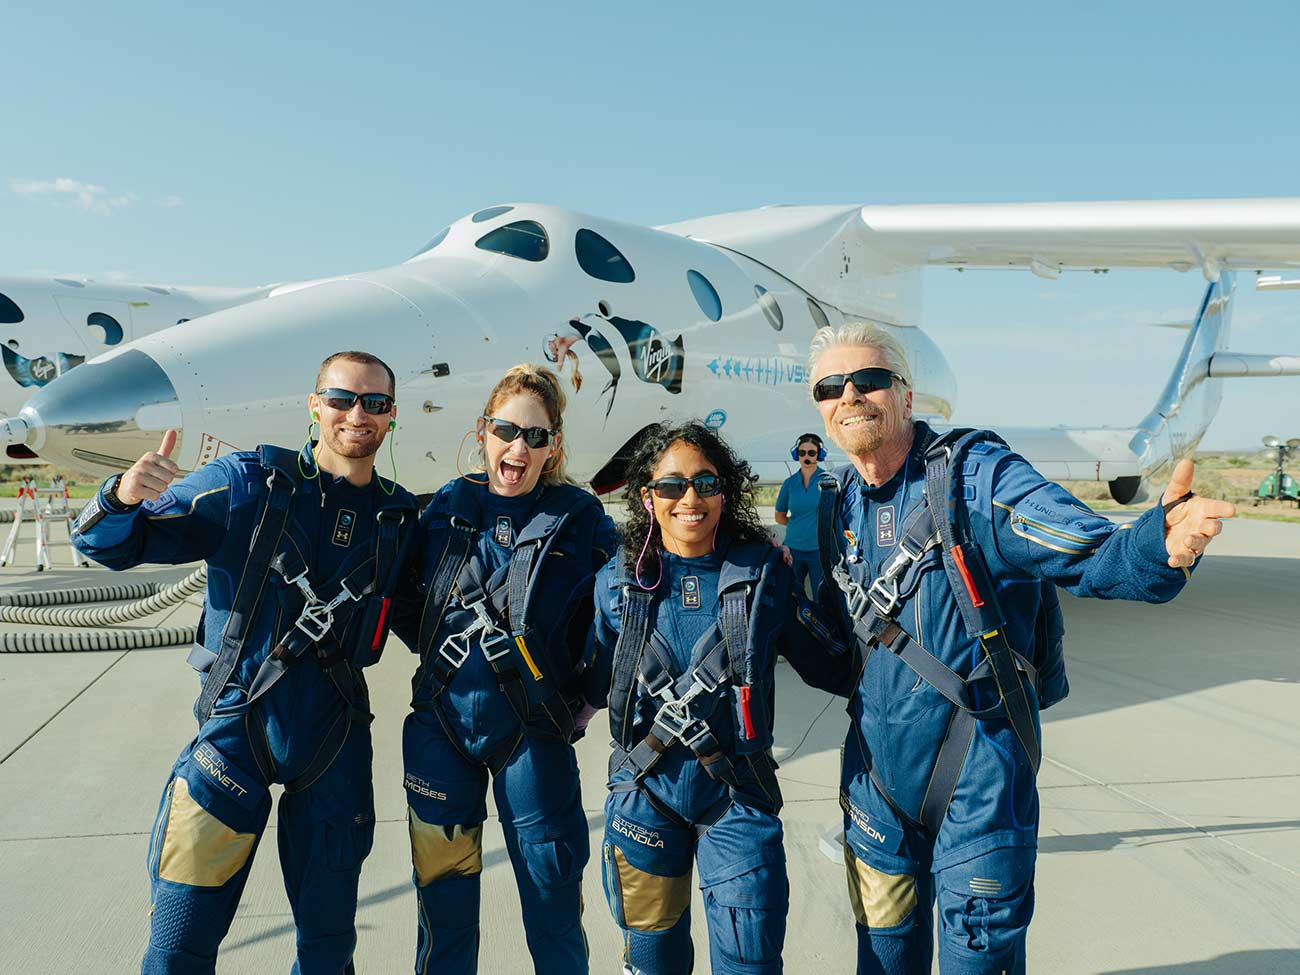 - Virgin Galactic Unity22 crew jpg - Branson and Bezos, why the new space race is about more than billionaires